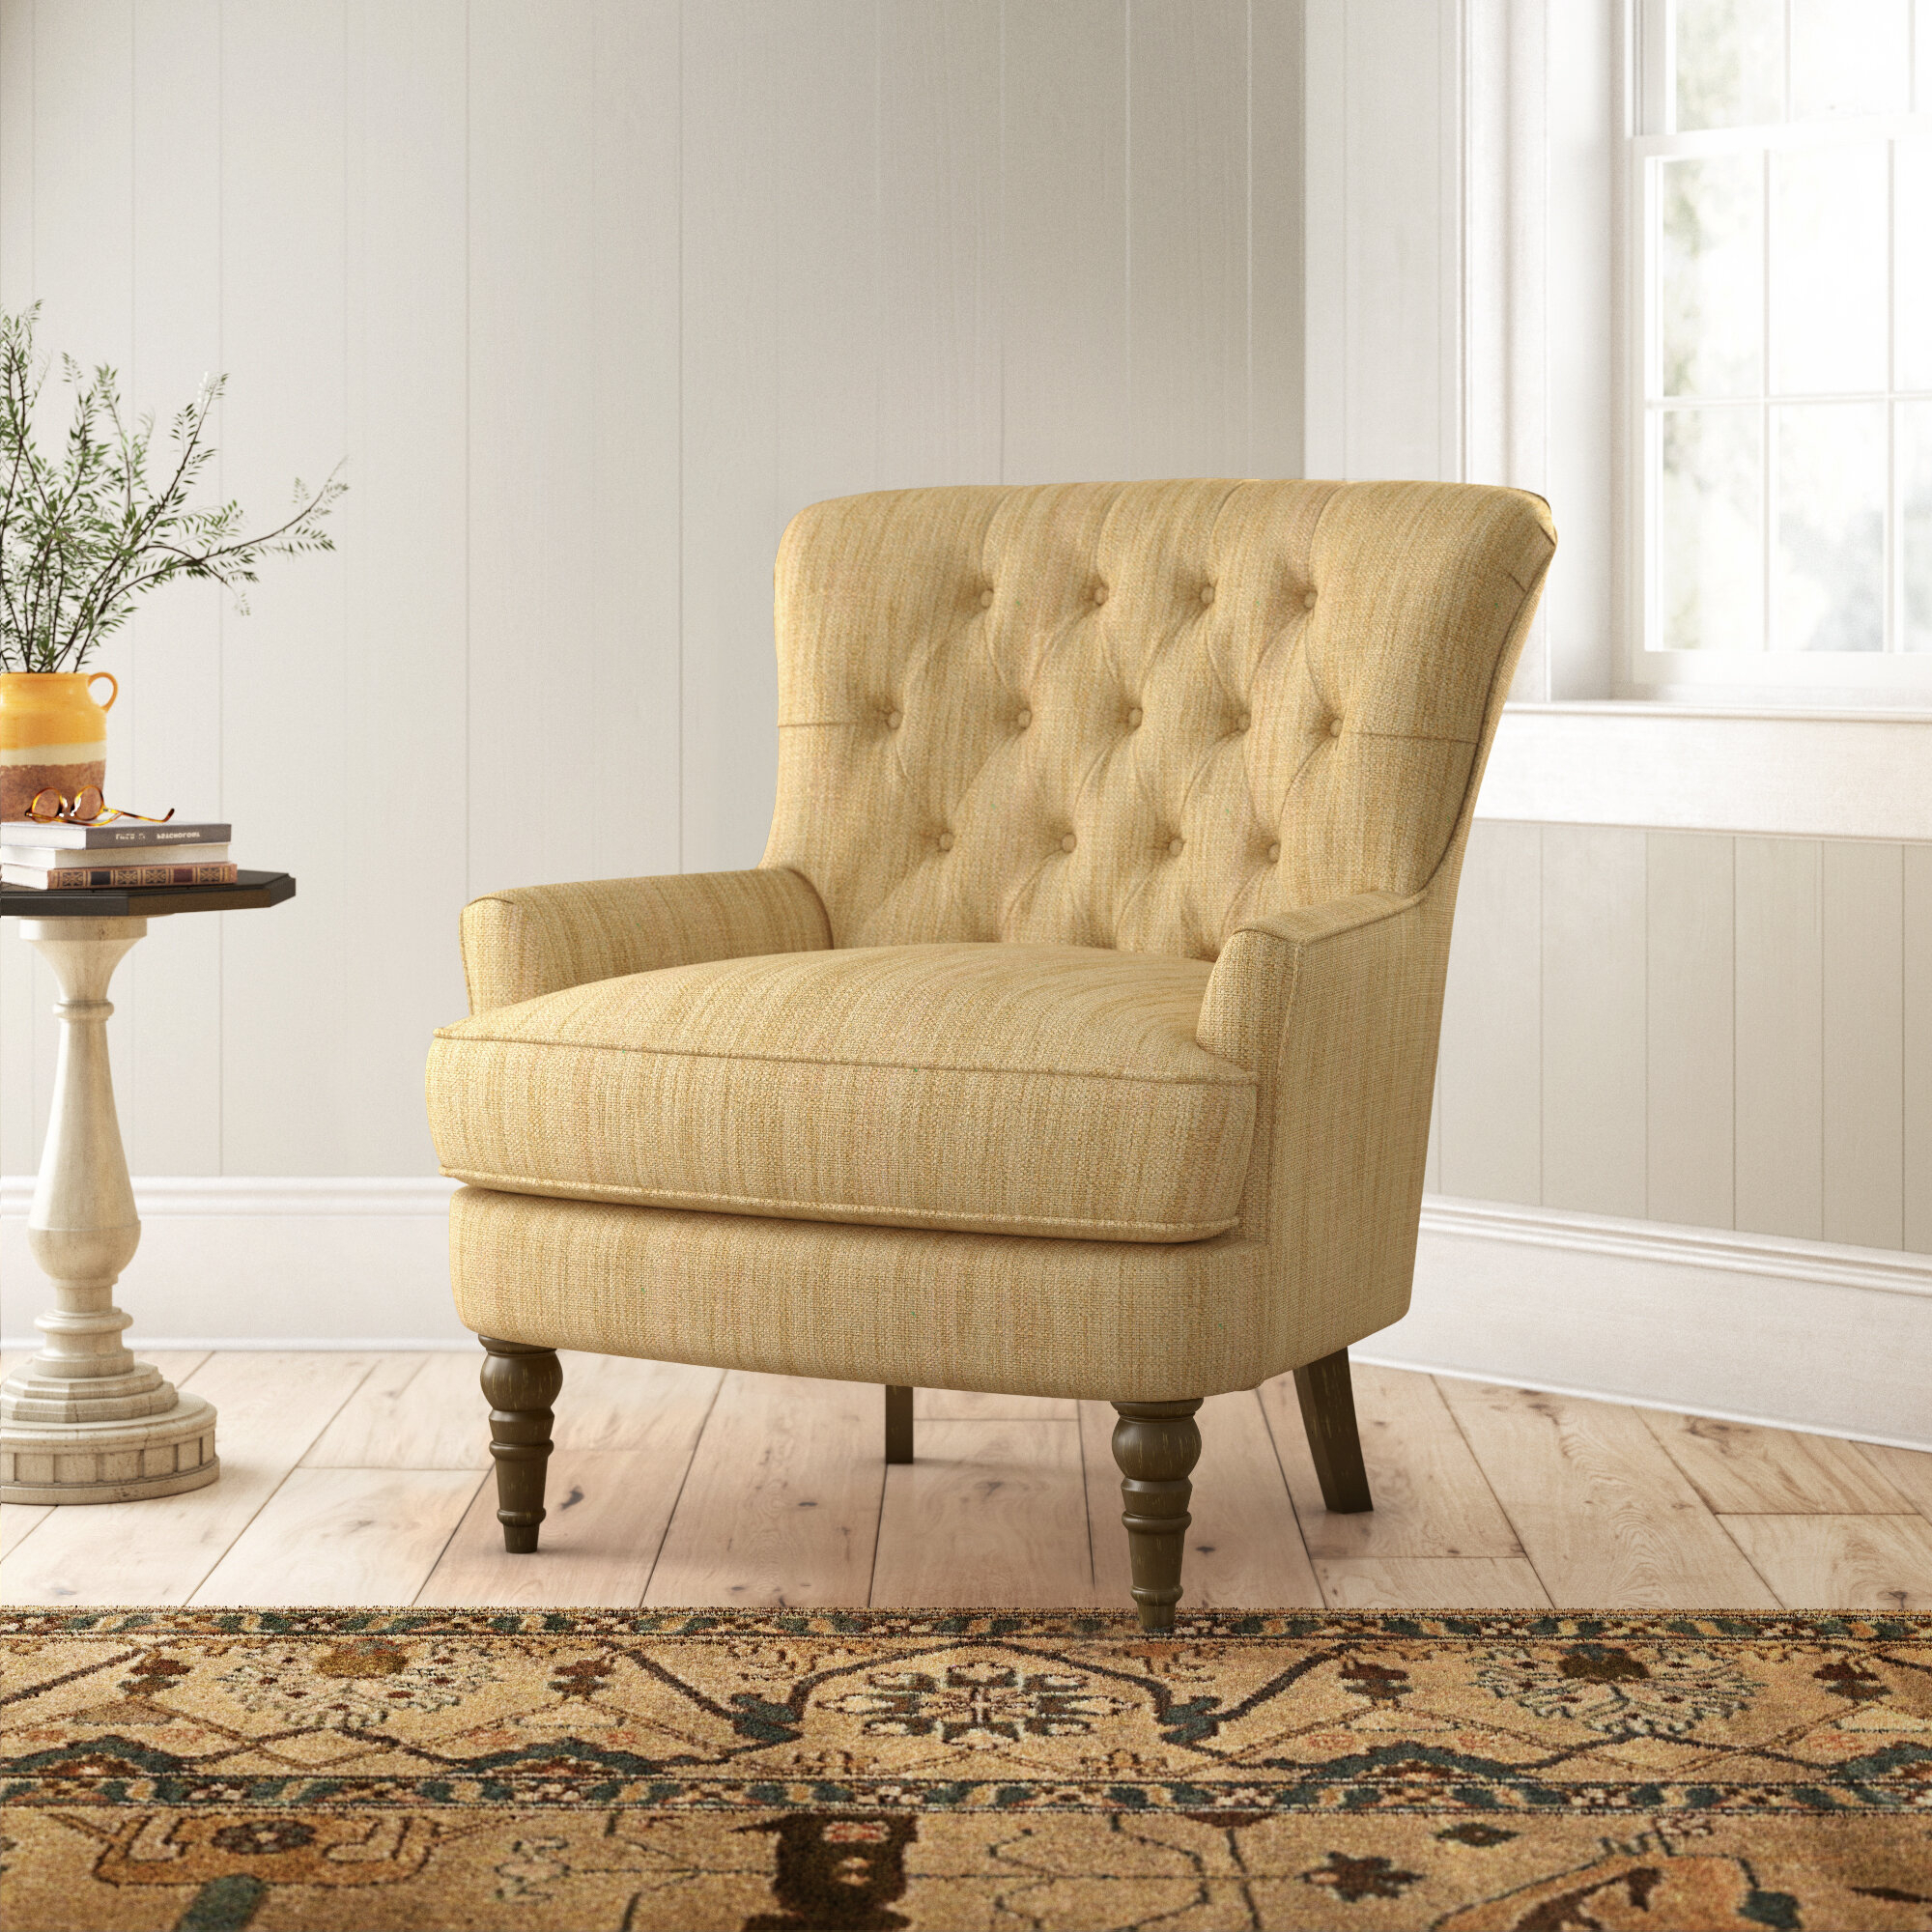 Farmhouse & Rustic Tufted Accent Chairs | Birch Lane For Galesville Tufted Polyester Wingback Chairs (View 10 of 15)